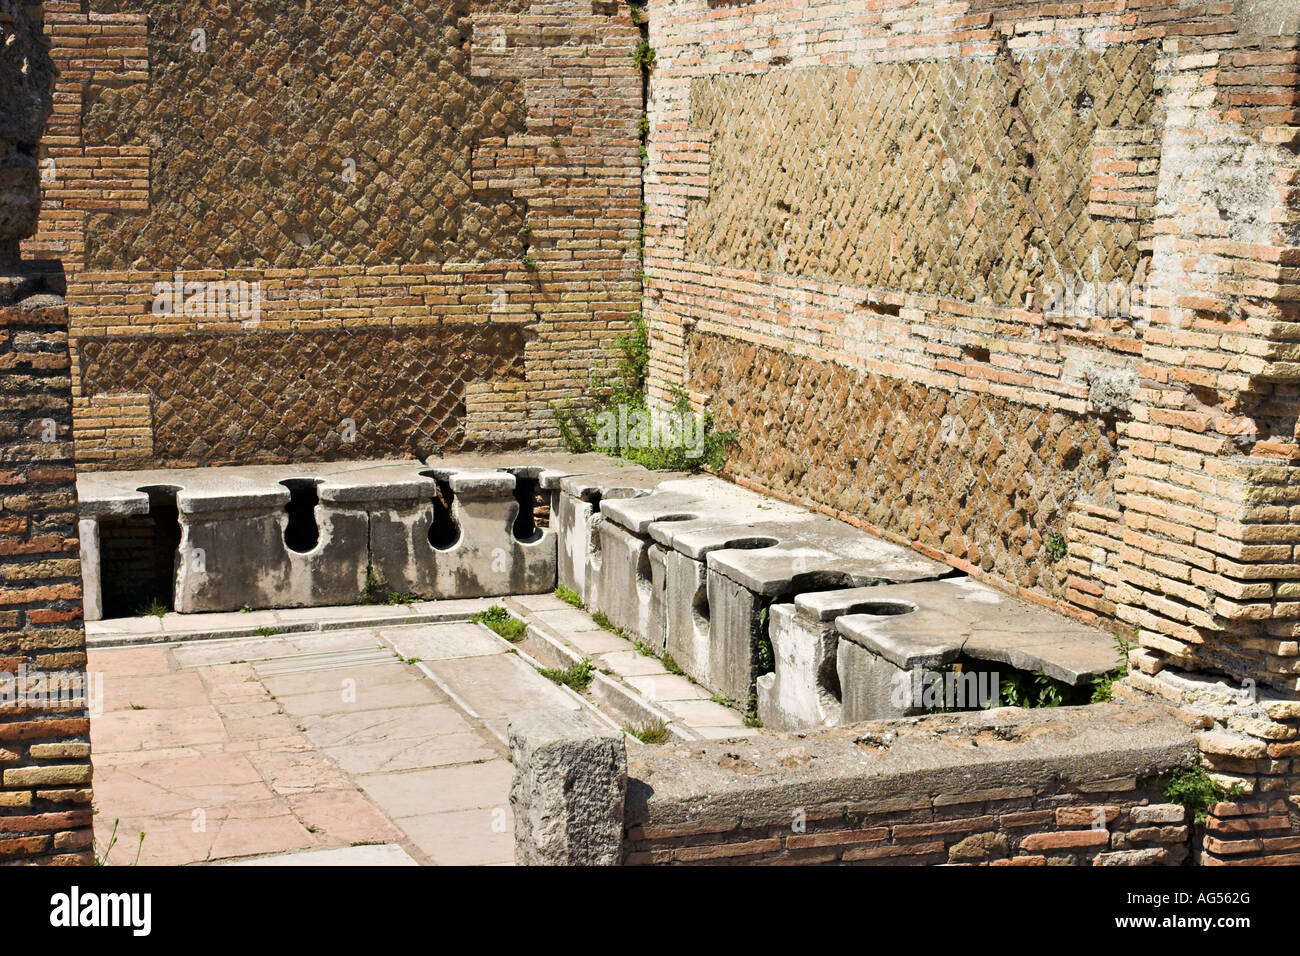 Ancient Toilet WC A room lined with stone toilets surrounded by old brick and underlaid with an elaborate plumbing - Stock Image